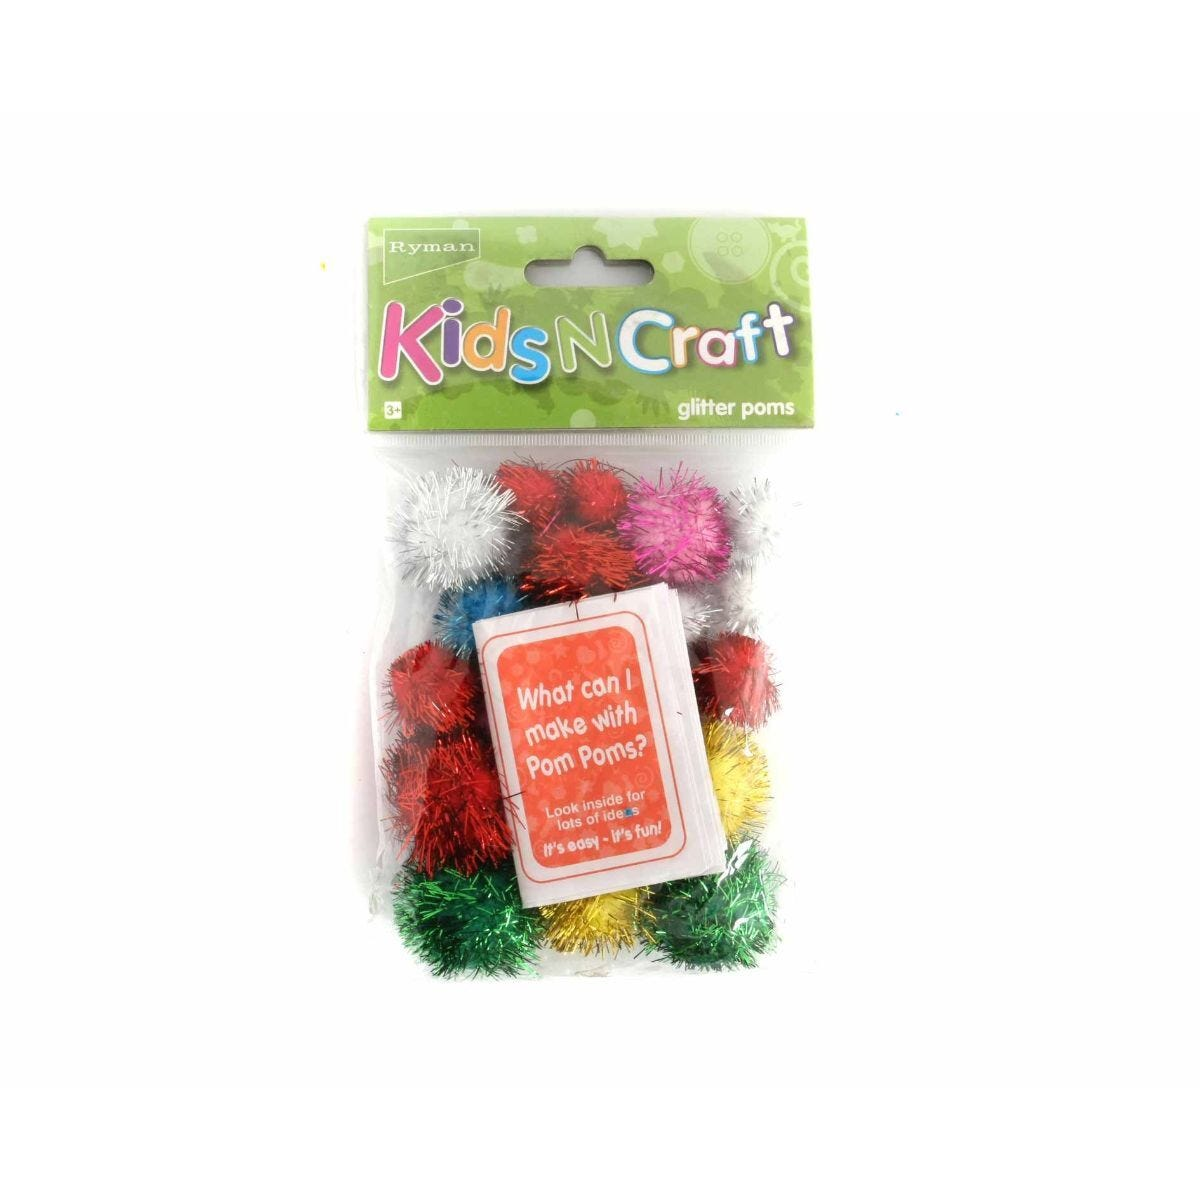 Ryman Activity Kit Glitter Poms